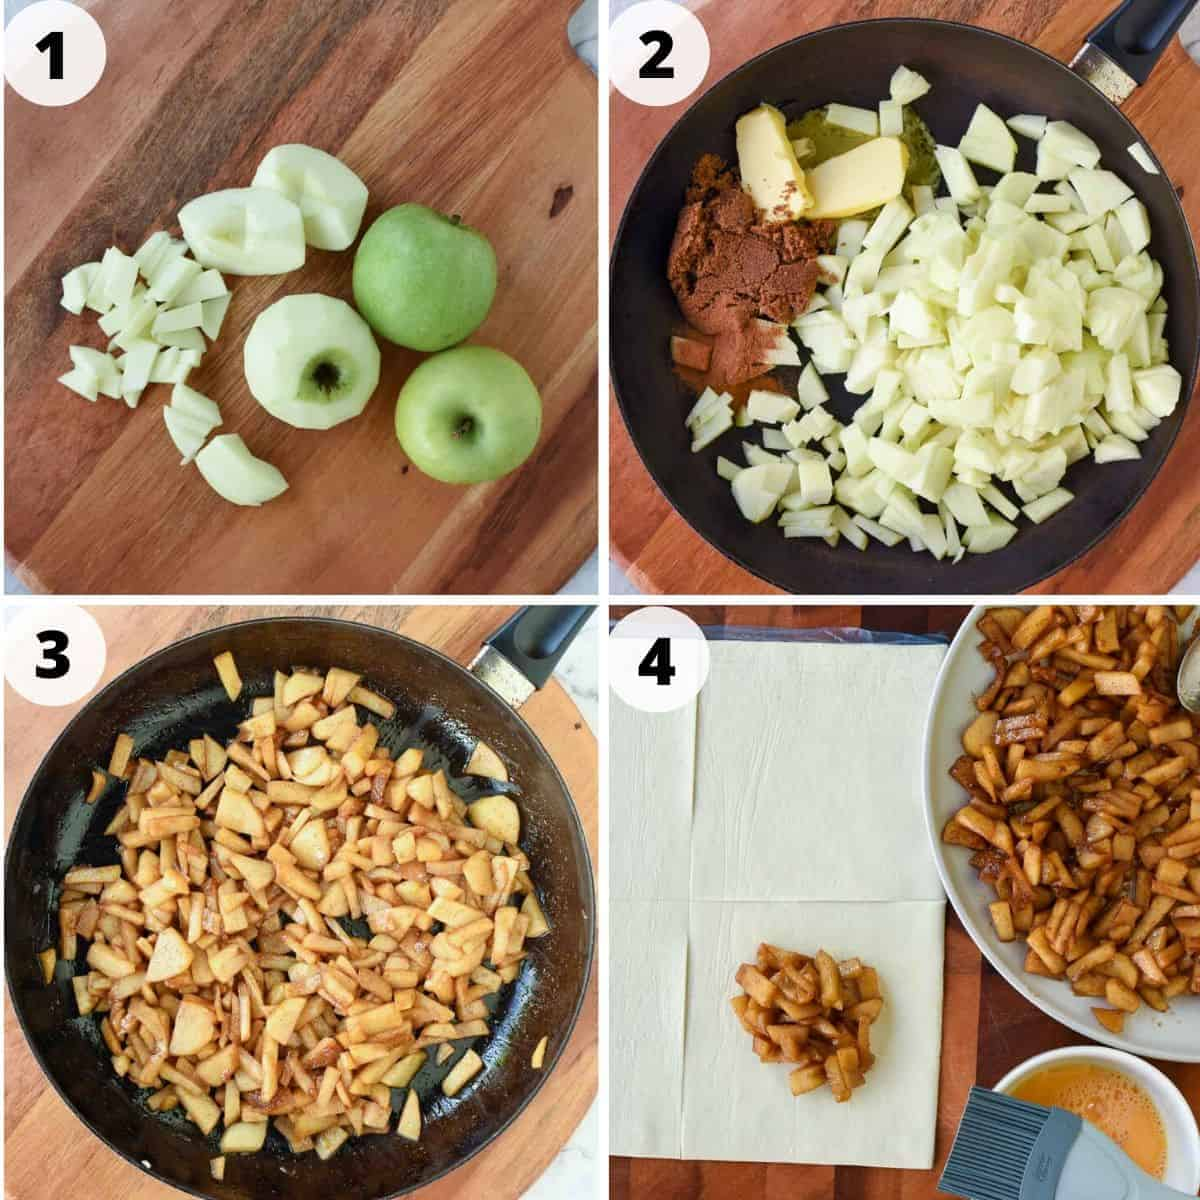 photo collage of preparation of apple turnovers. imade 1 is green apples whole and cut, image two is black pan with chopped apples, brown sugar and butter, image 3 is caramelised apples in black pan, image 4 is caramelised apples on a plate, square of dough and bowl with beaten egg